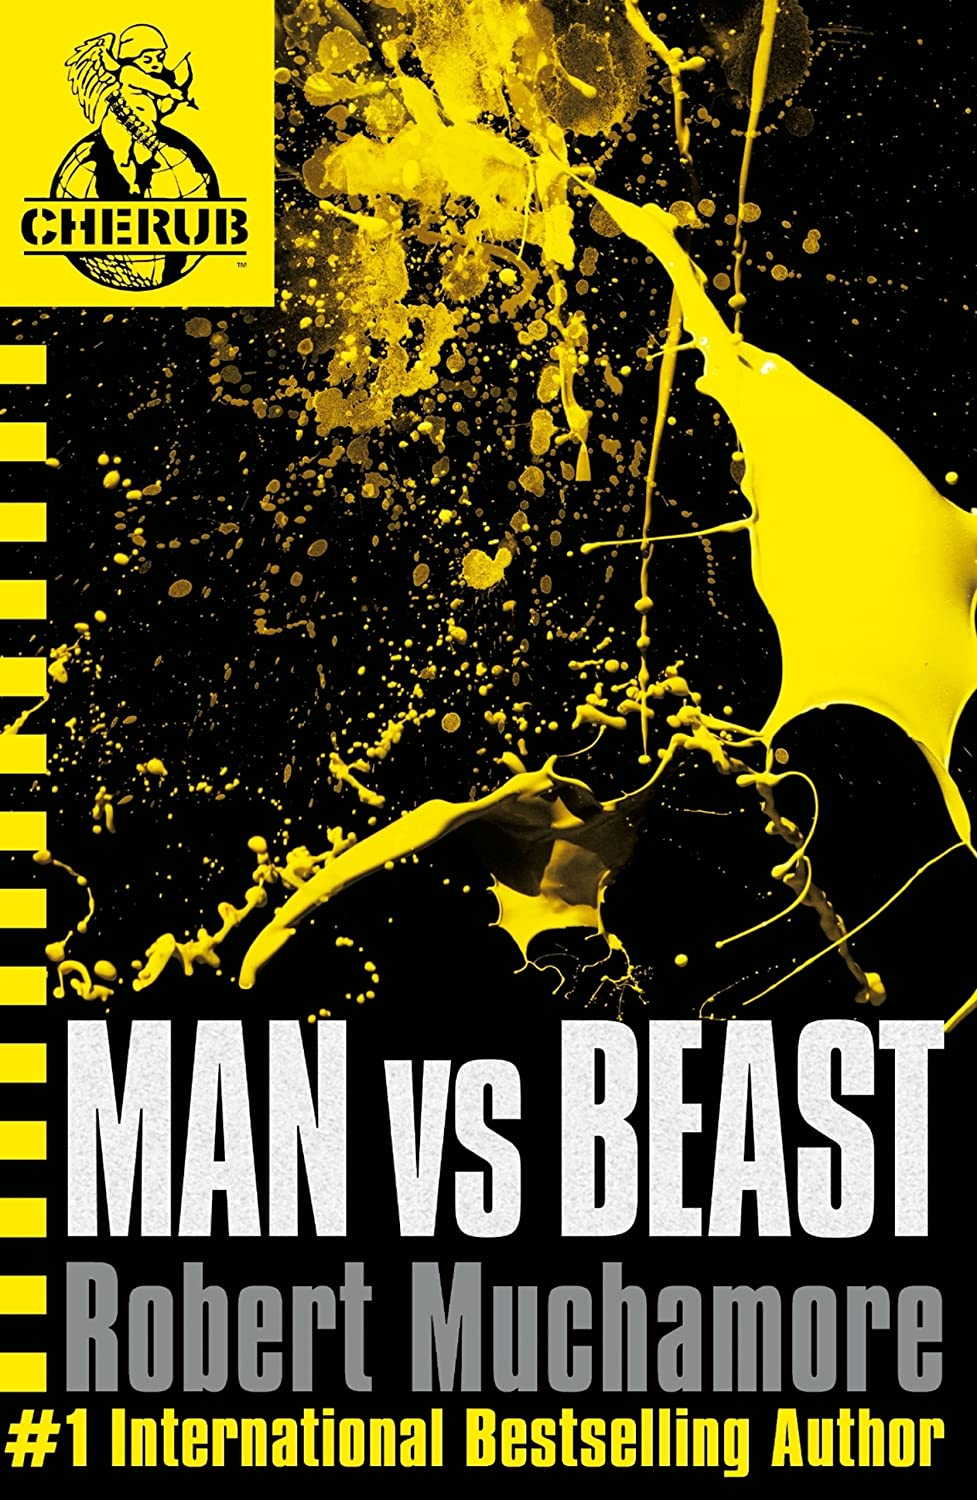 Man vs Beast: Book 6 (CHERUB Series) (English Edition)